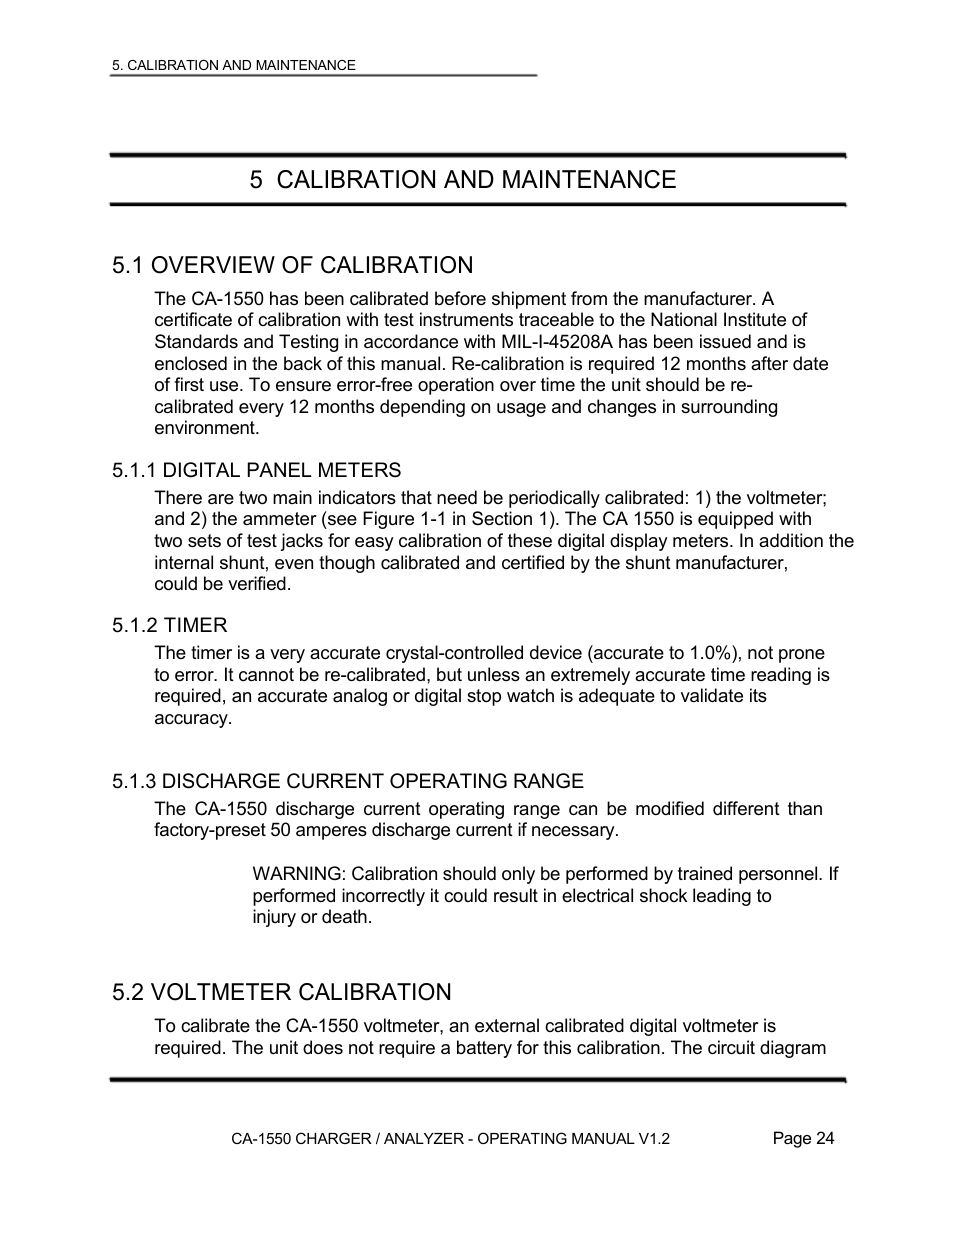 5 Calibration And Maintenance 1 Overview Of 2 Digital Voltmeter Ammeter Wiring Diagram Lamar Technologies Ca 1550 User Manual Page 26 41